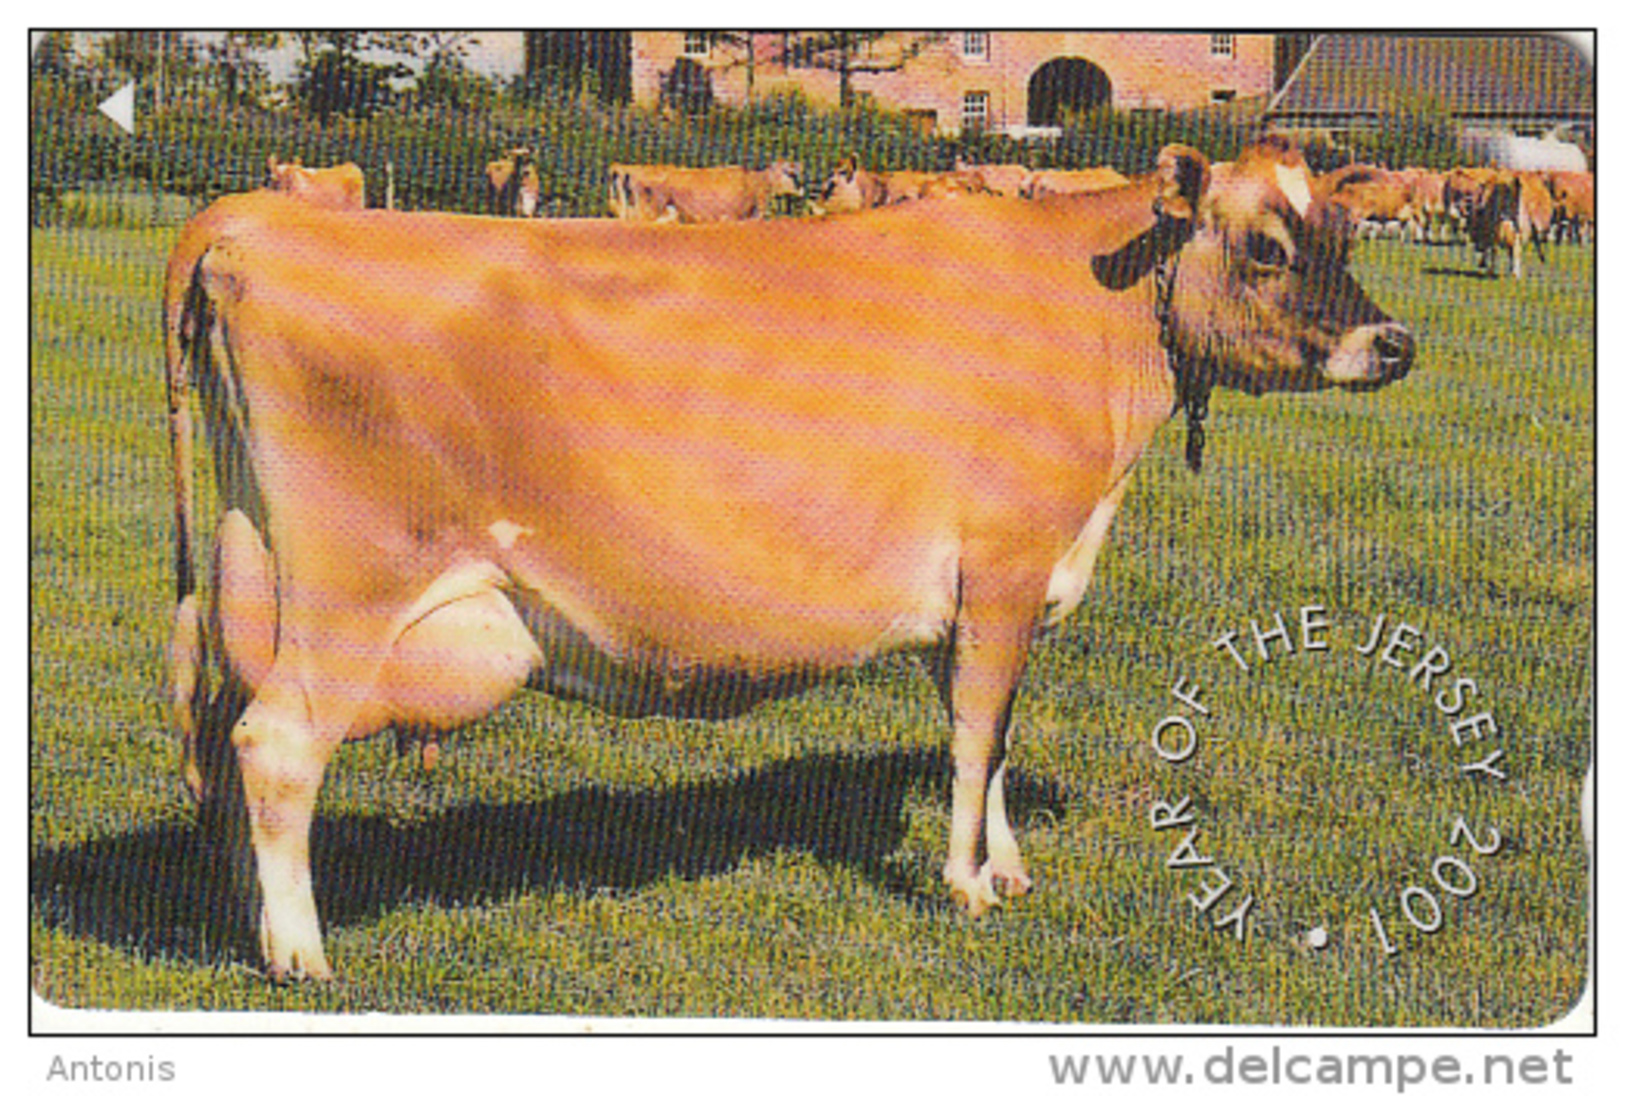 JERSEY ISL. - Cow, Year Of The Jersey 2001, CN : 90JERA(normal 0), Used - United Kingdom